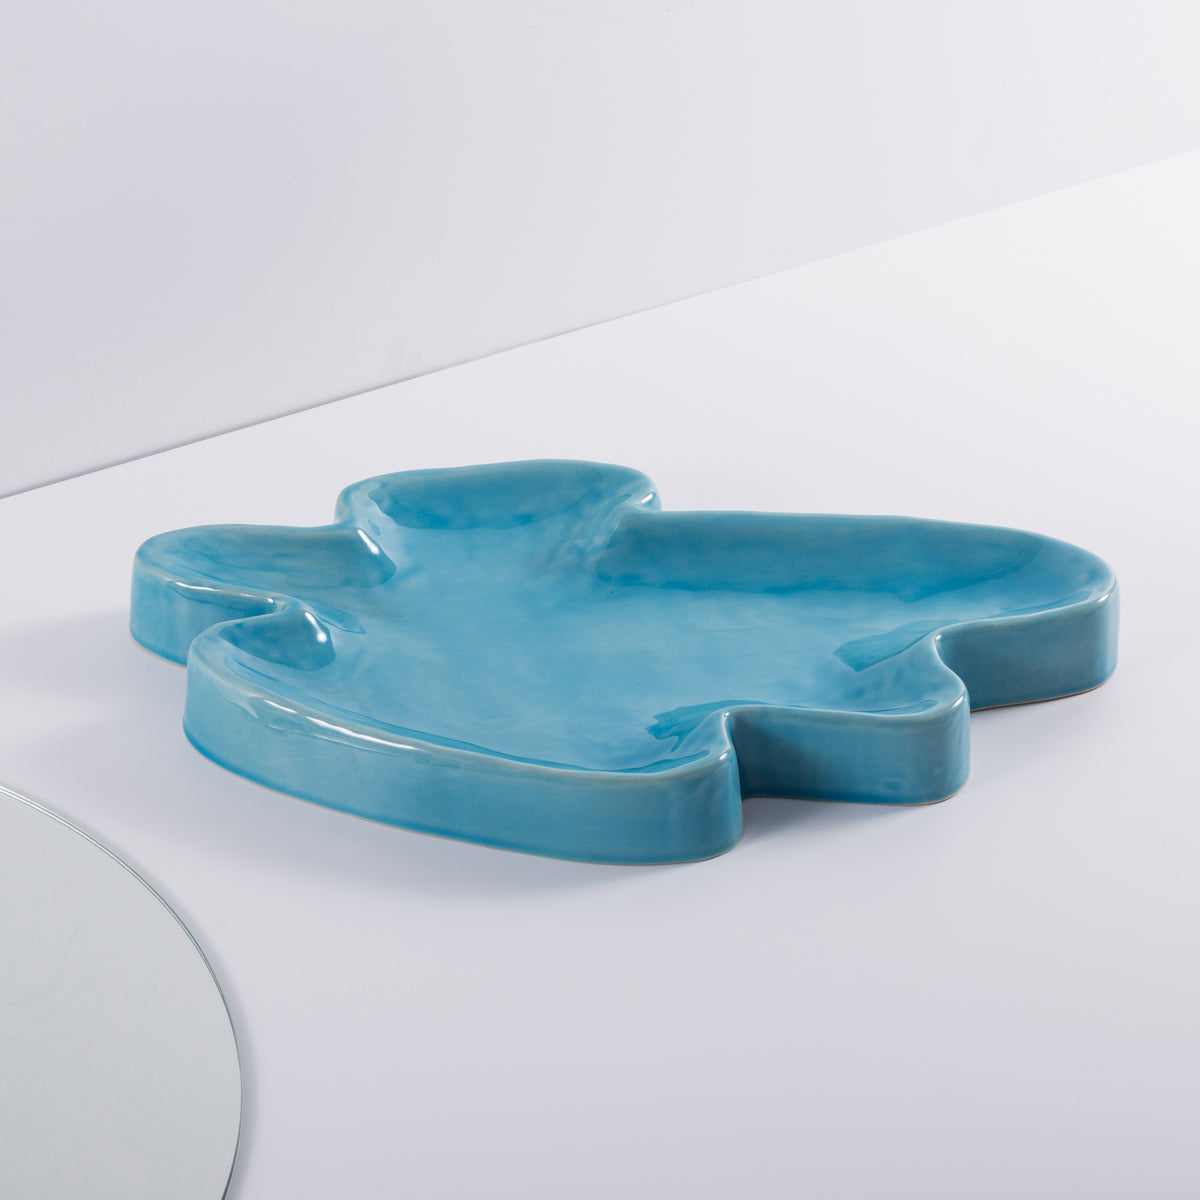 Lake Bowl - Tropical Turquoise